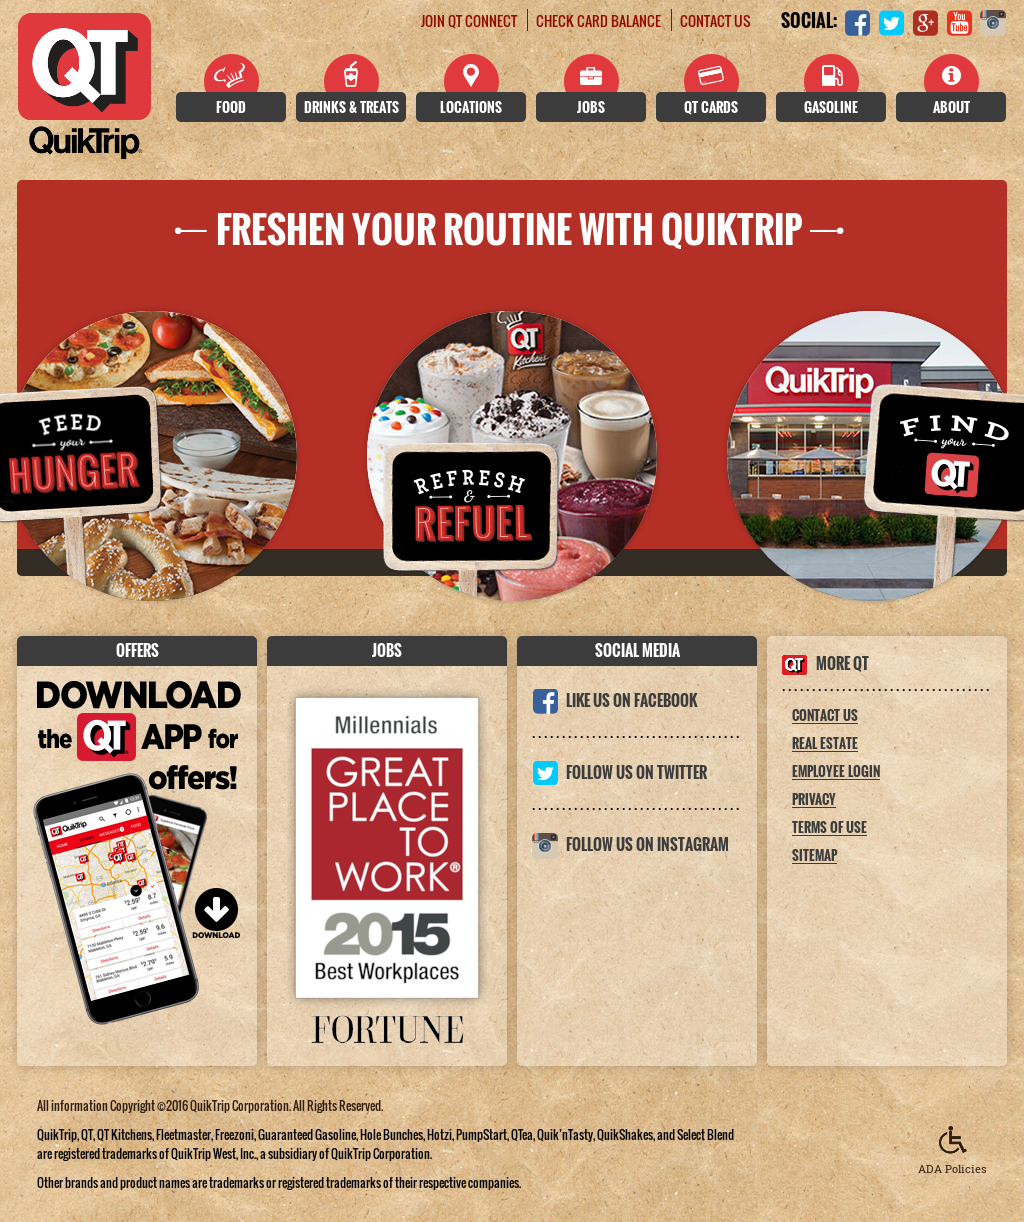 QuikTrip Competitors, Revenue and Employees - Owler Company Profile